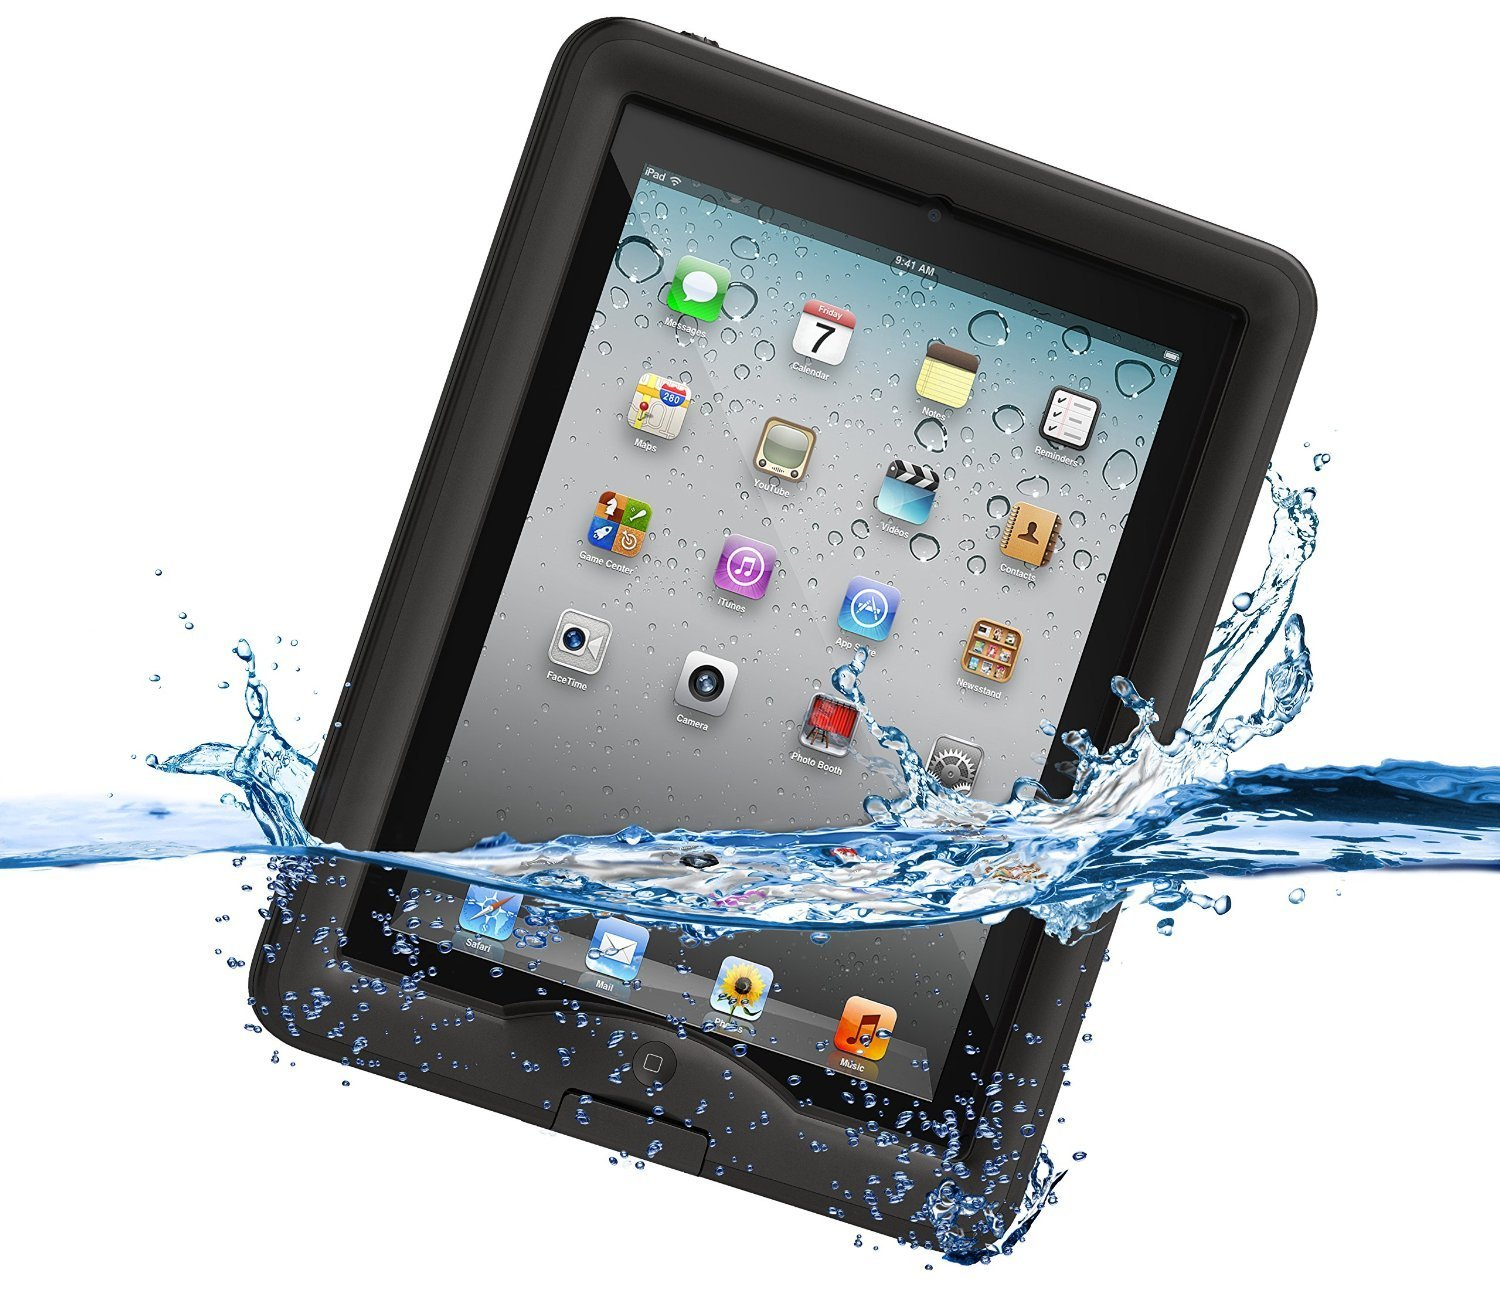 LifeProof Nuud Αδιάβροχη Θήκη iPad 4 / 3 / 2 - Black (1110-01) all